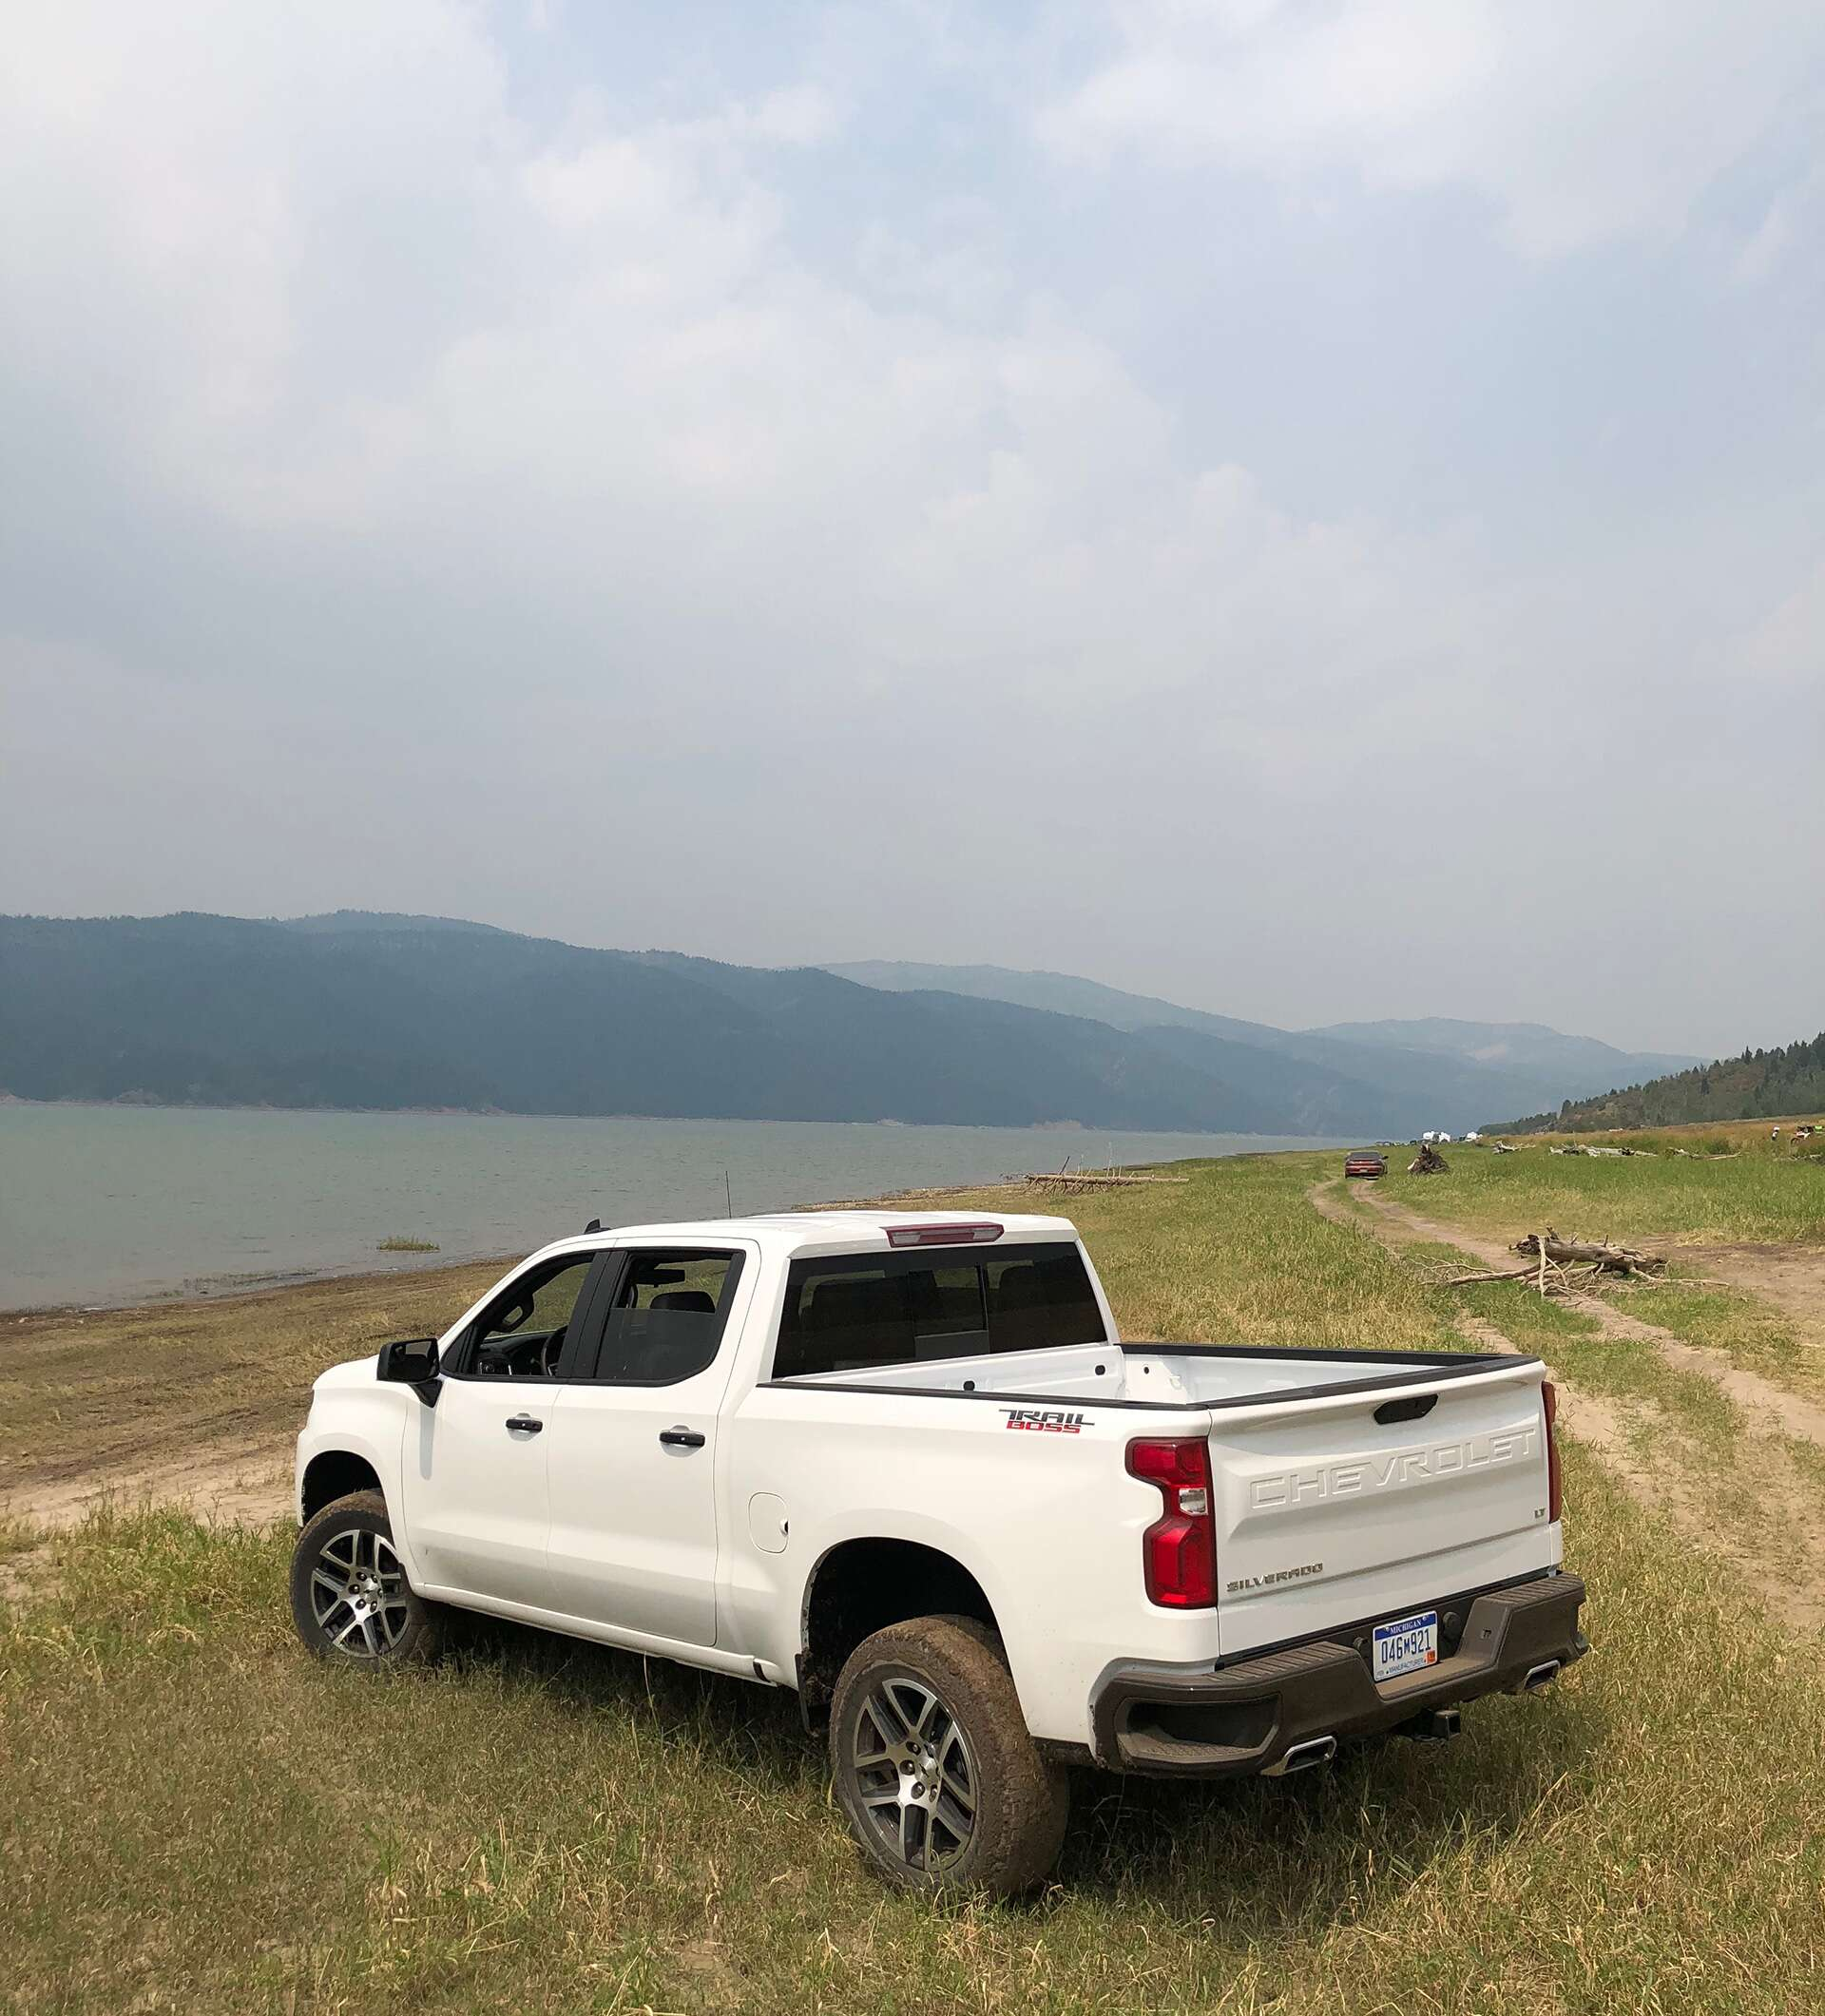 2019 Chevrolet Silverado First Drive Review: The People's